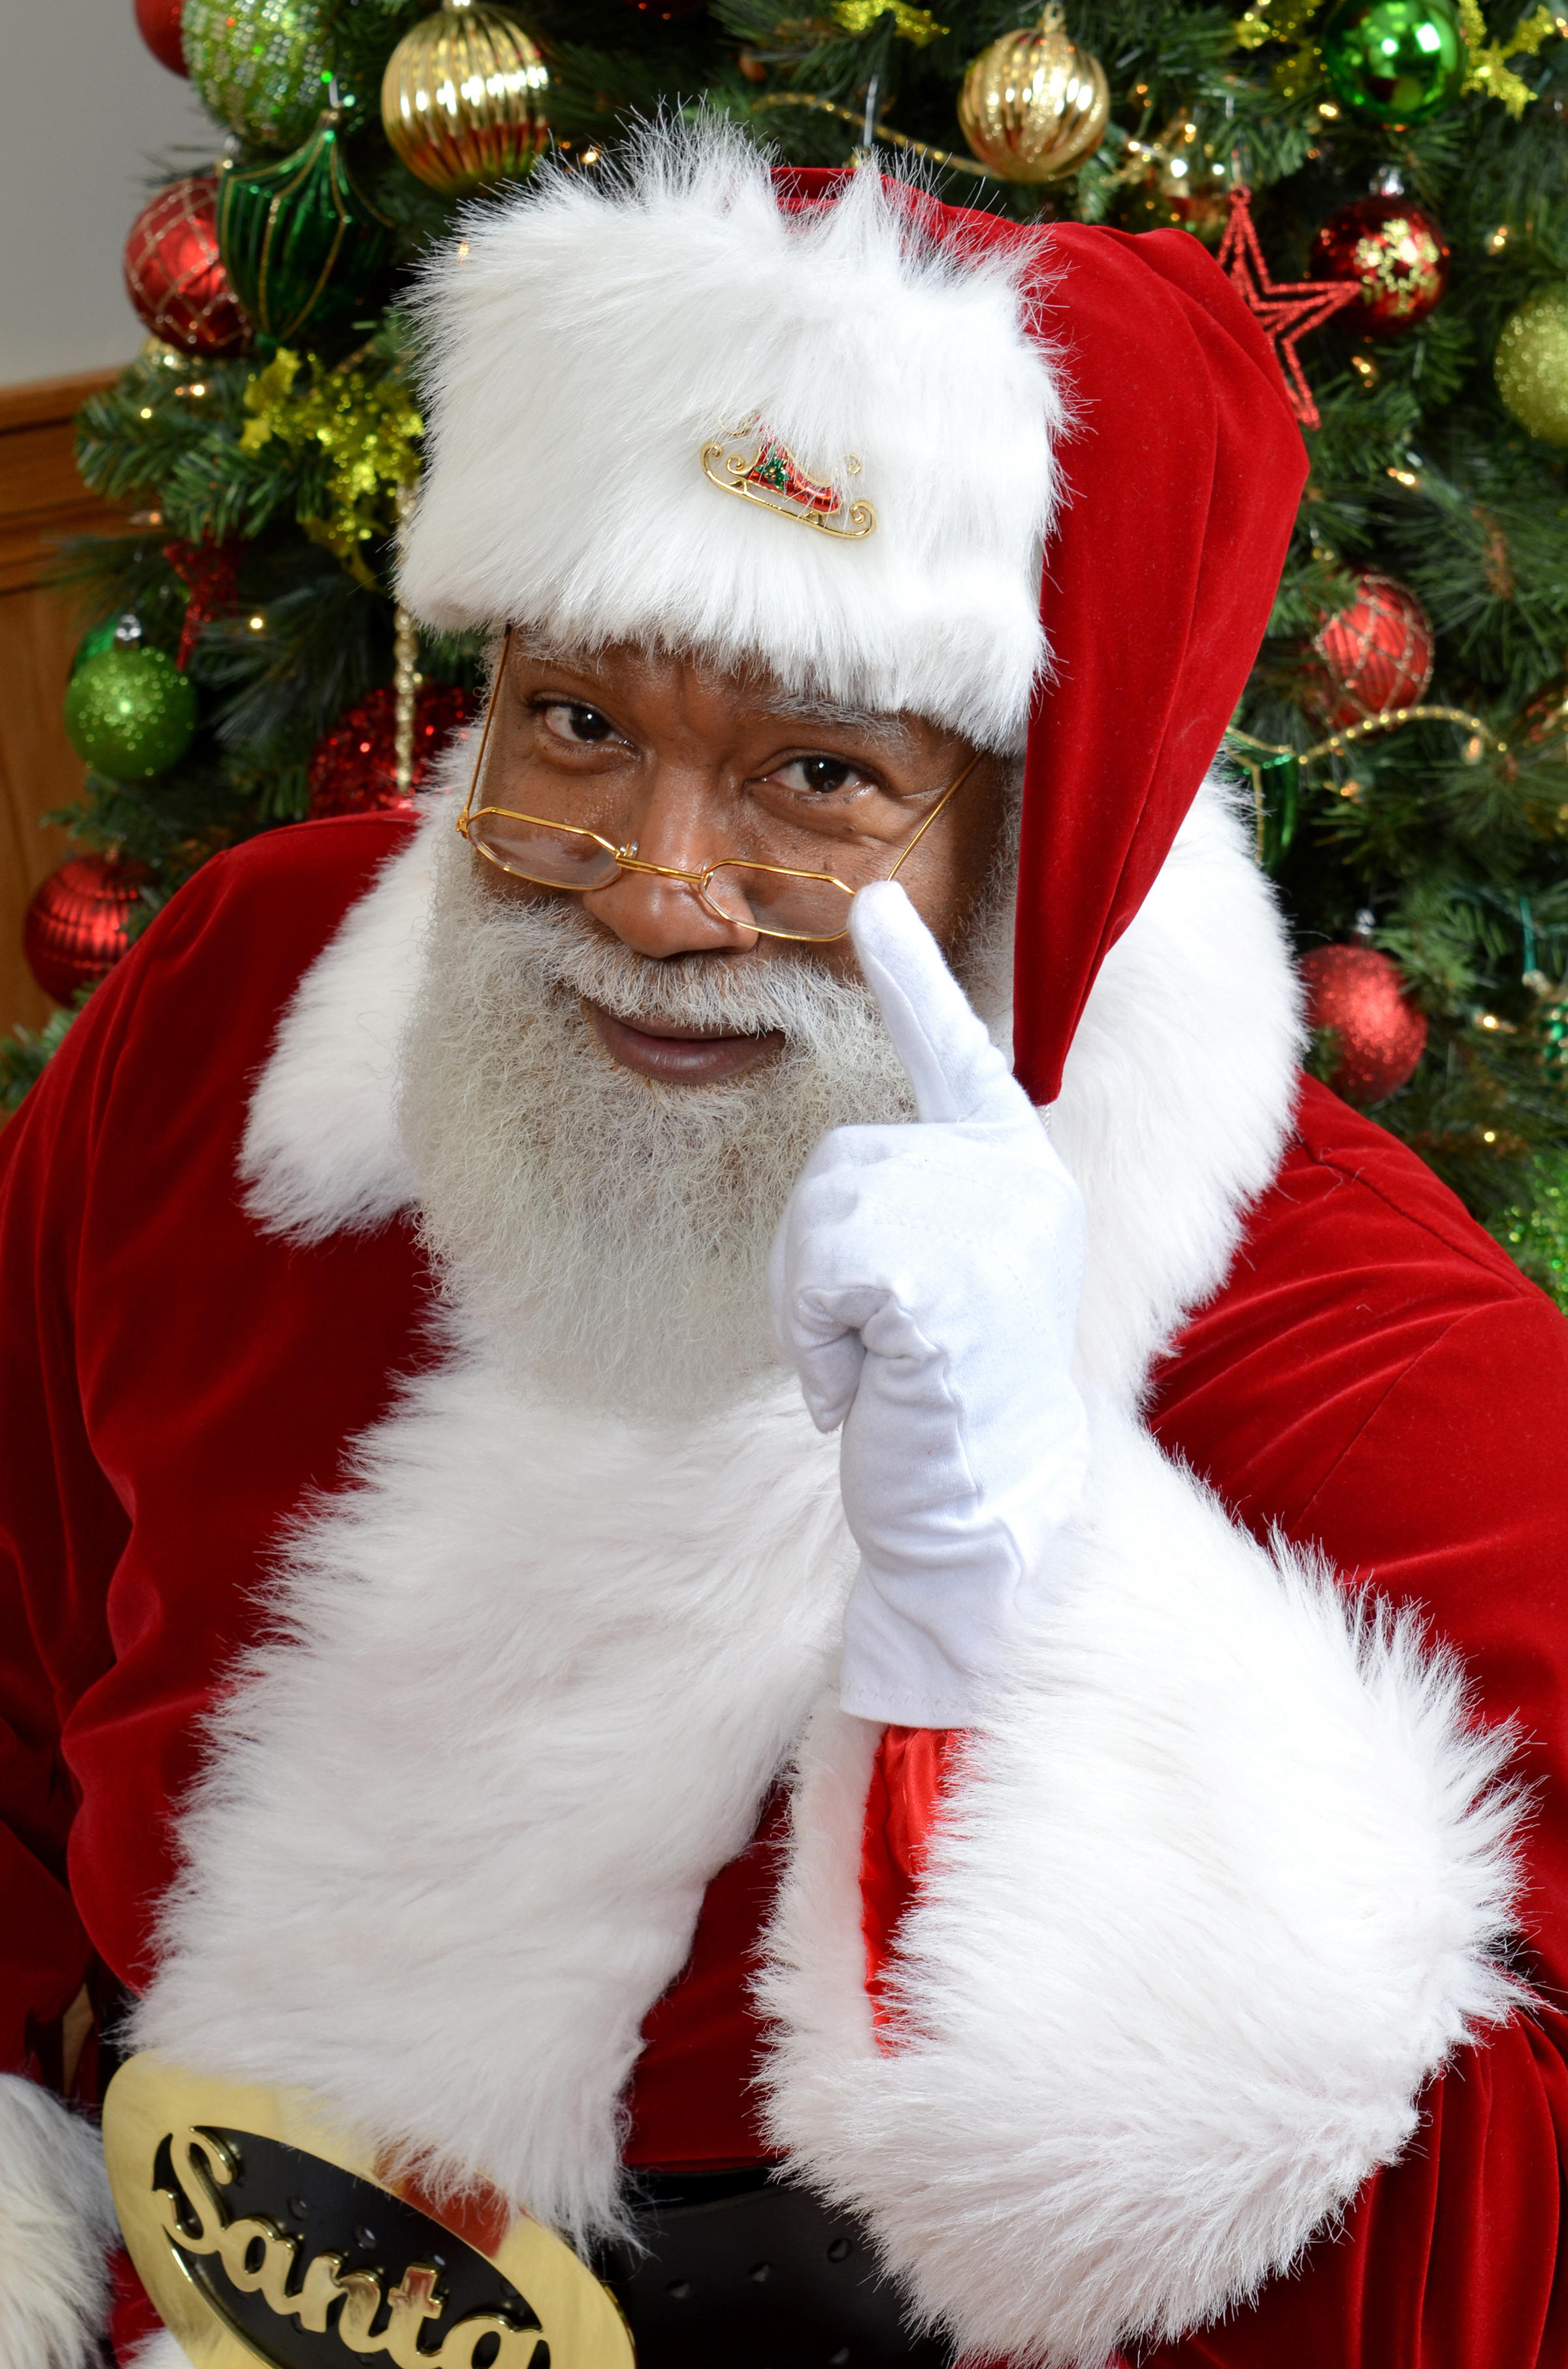 Black Santa Claus Is A Hit At Mall Of America But Faces An